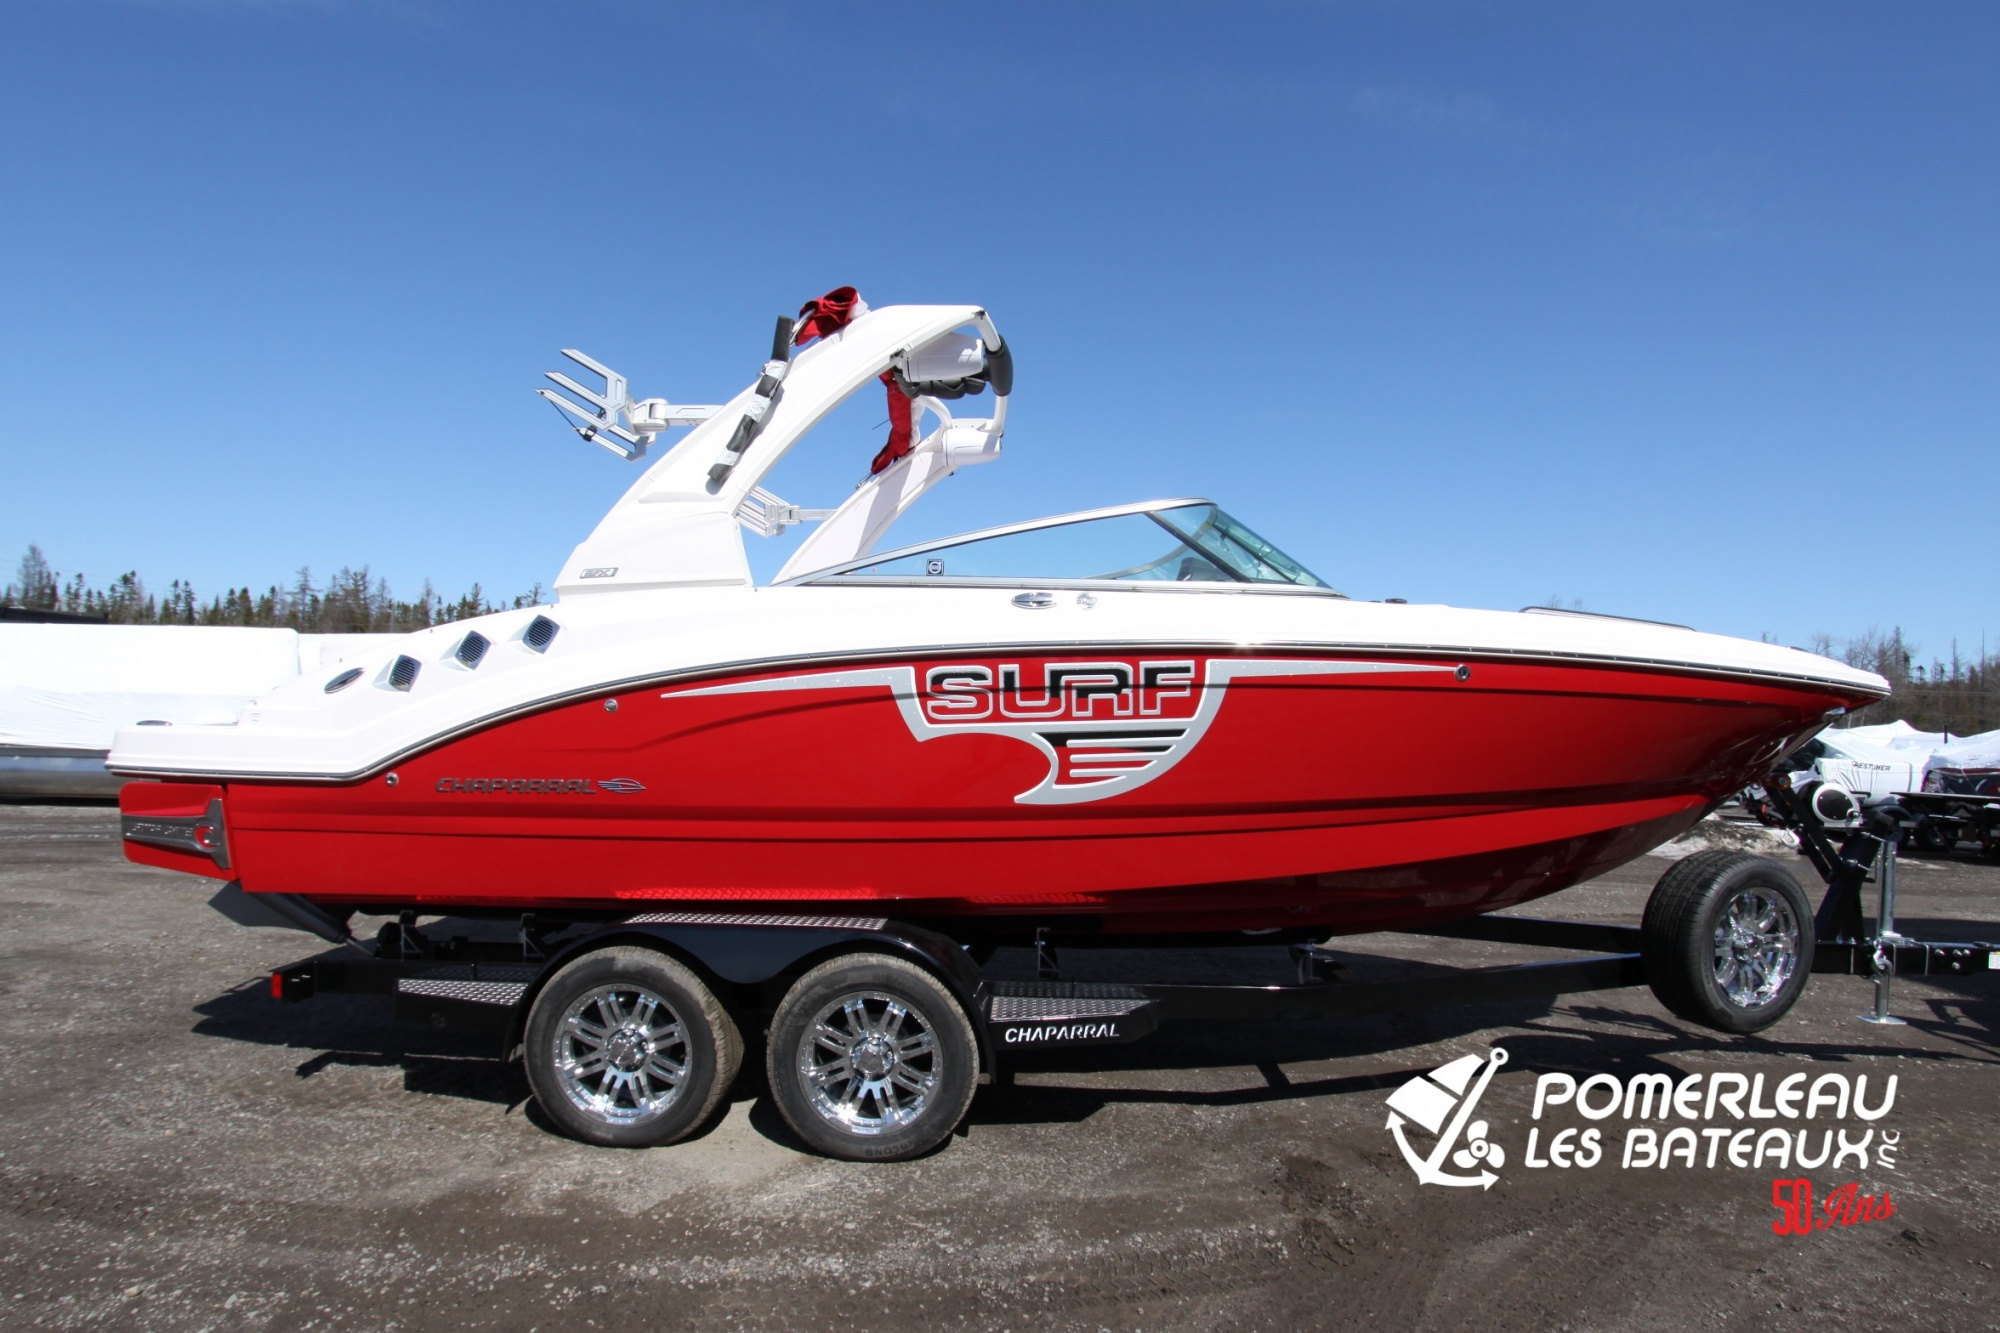 Chaparral 24 Surf - IMG_4994